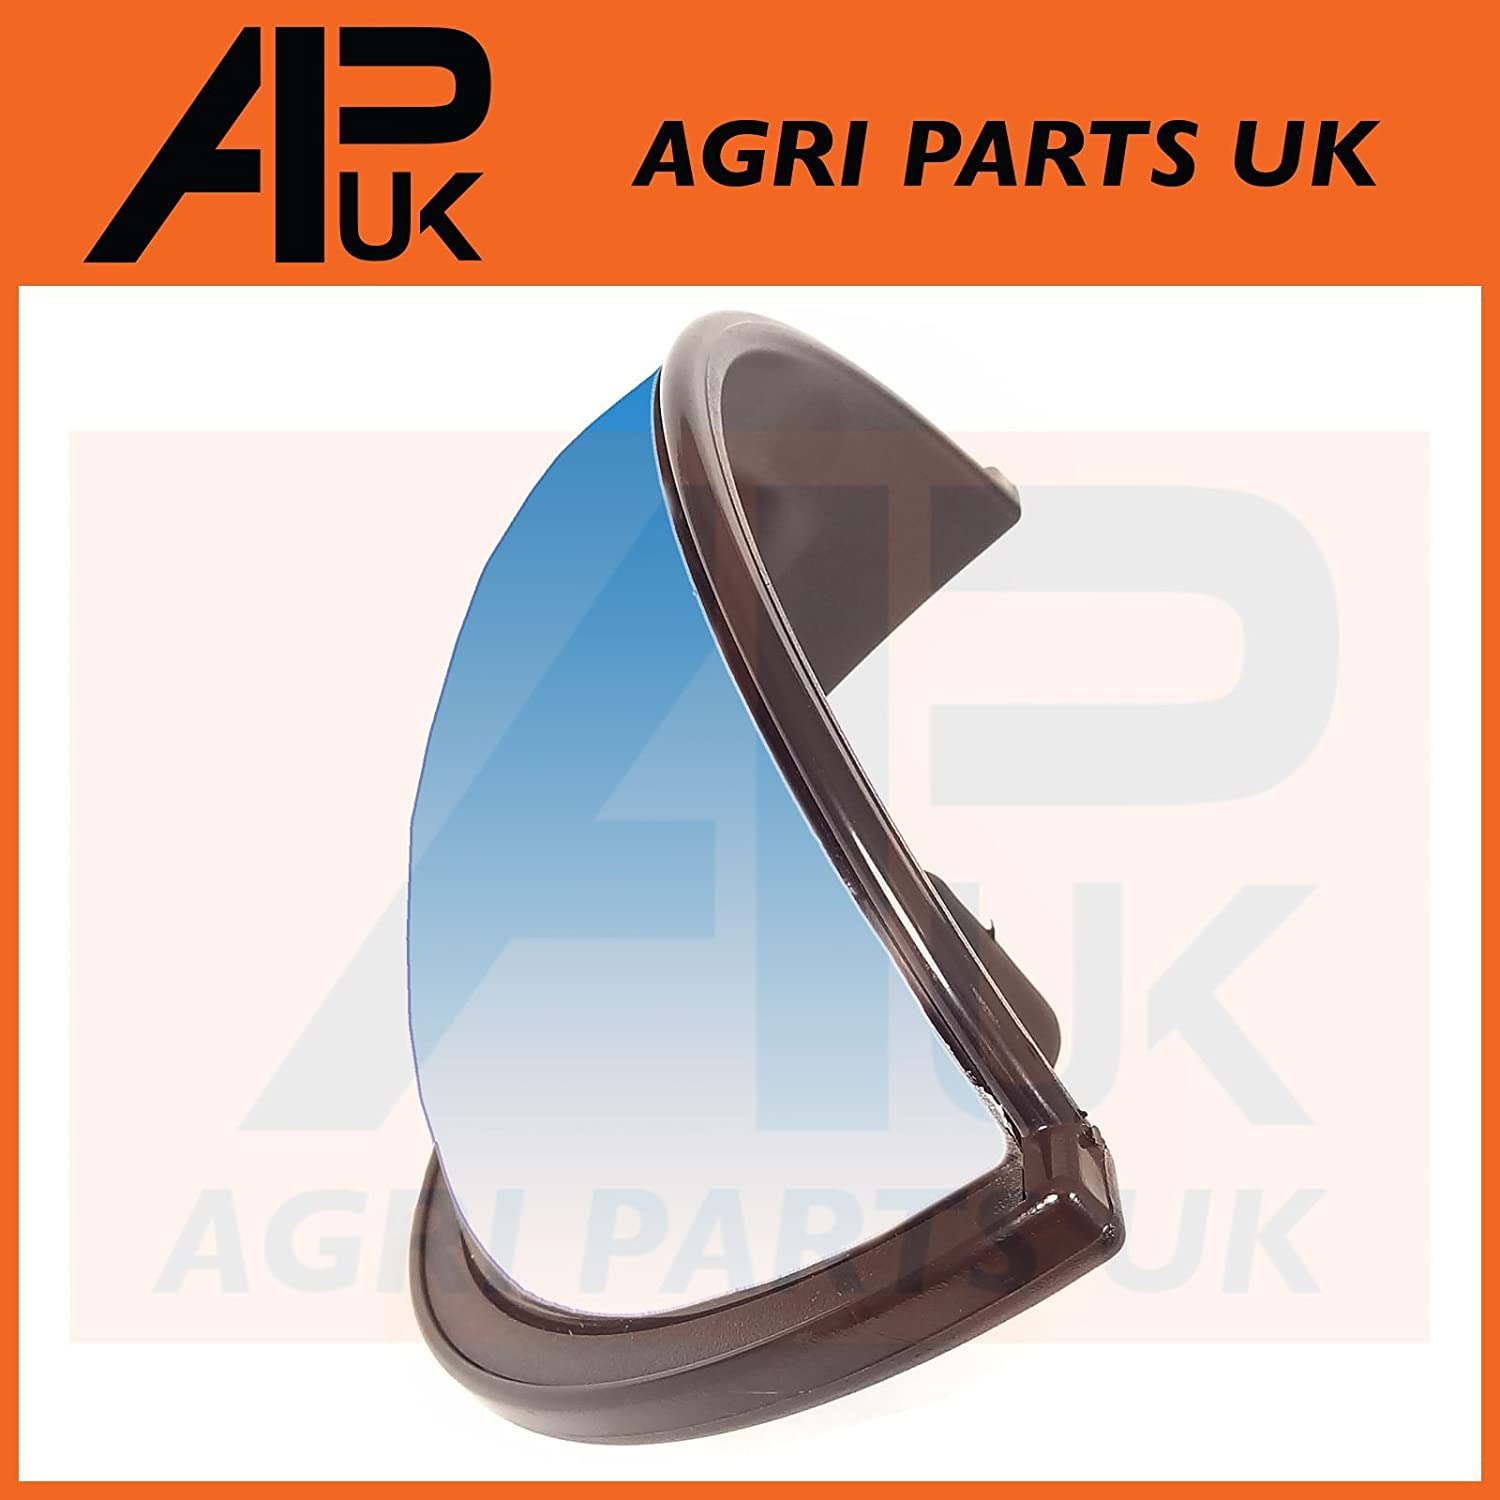 APUK NEW Universal Fish eye Mirror Head Curved with Clamp Tractor Plant Digger Lorry